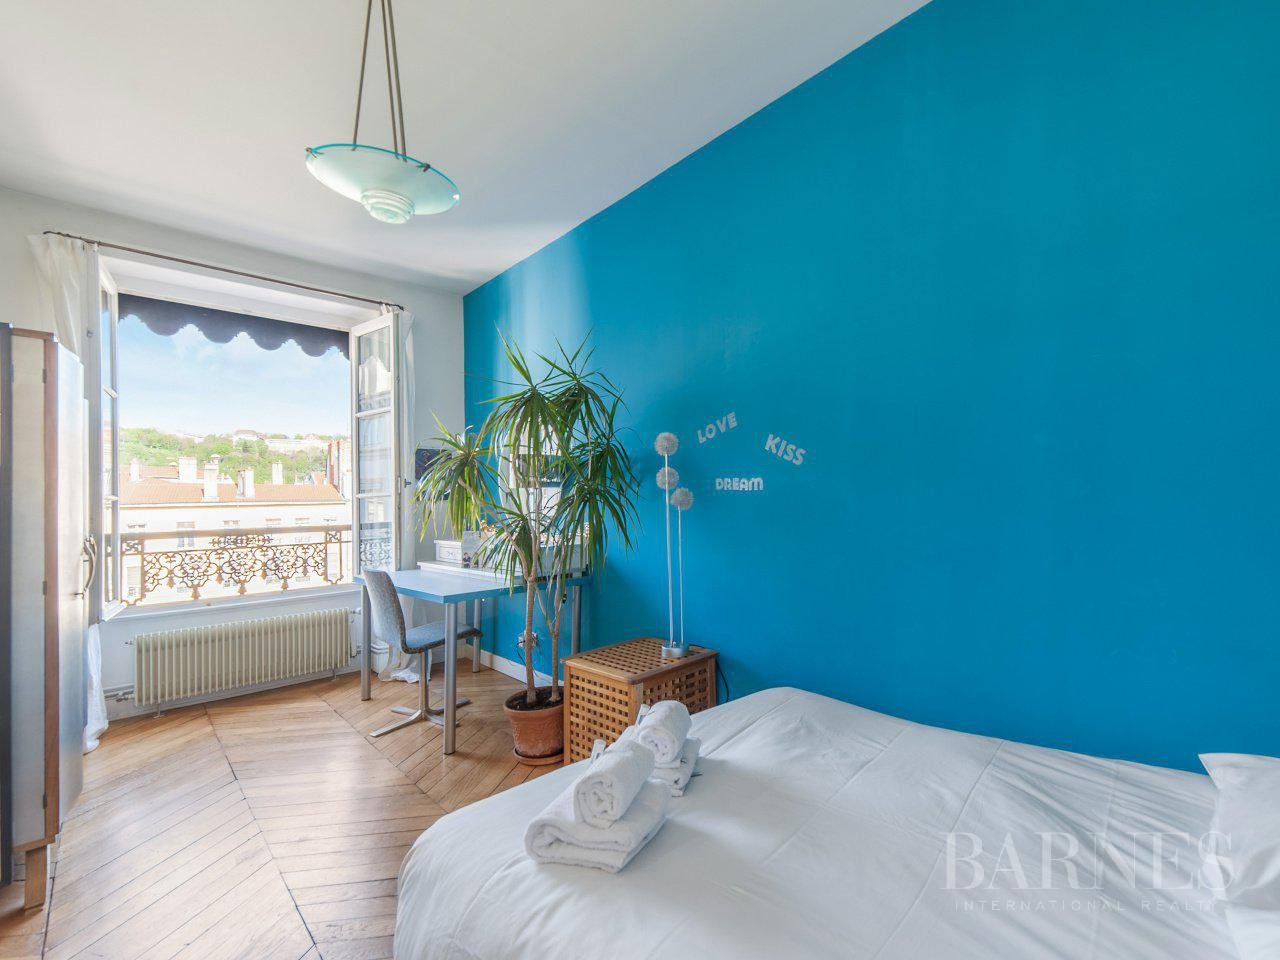 Lyon 2 - Ainay- Apartment of 108 sqm - 3 bedrooms